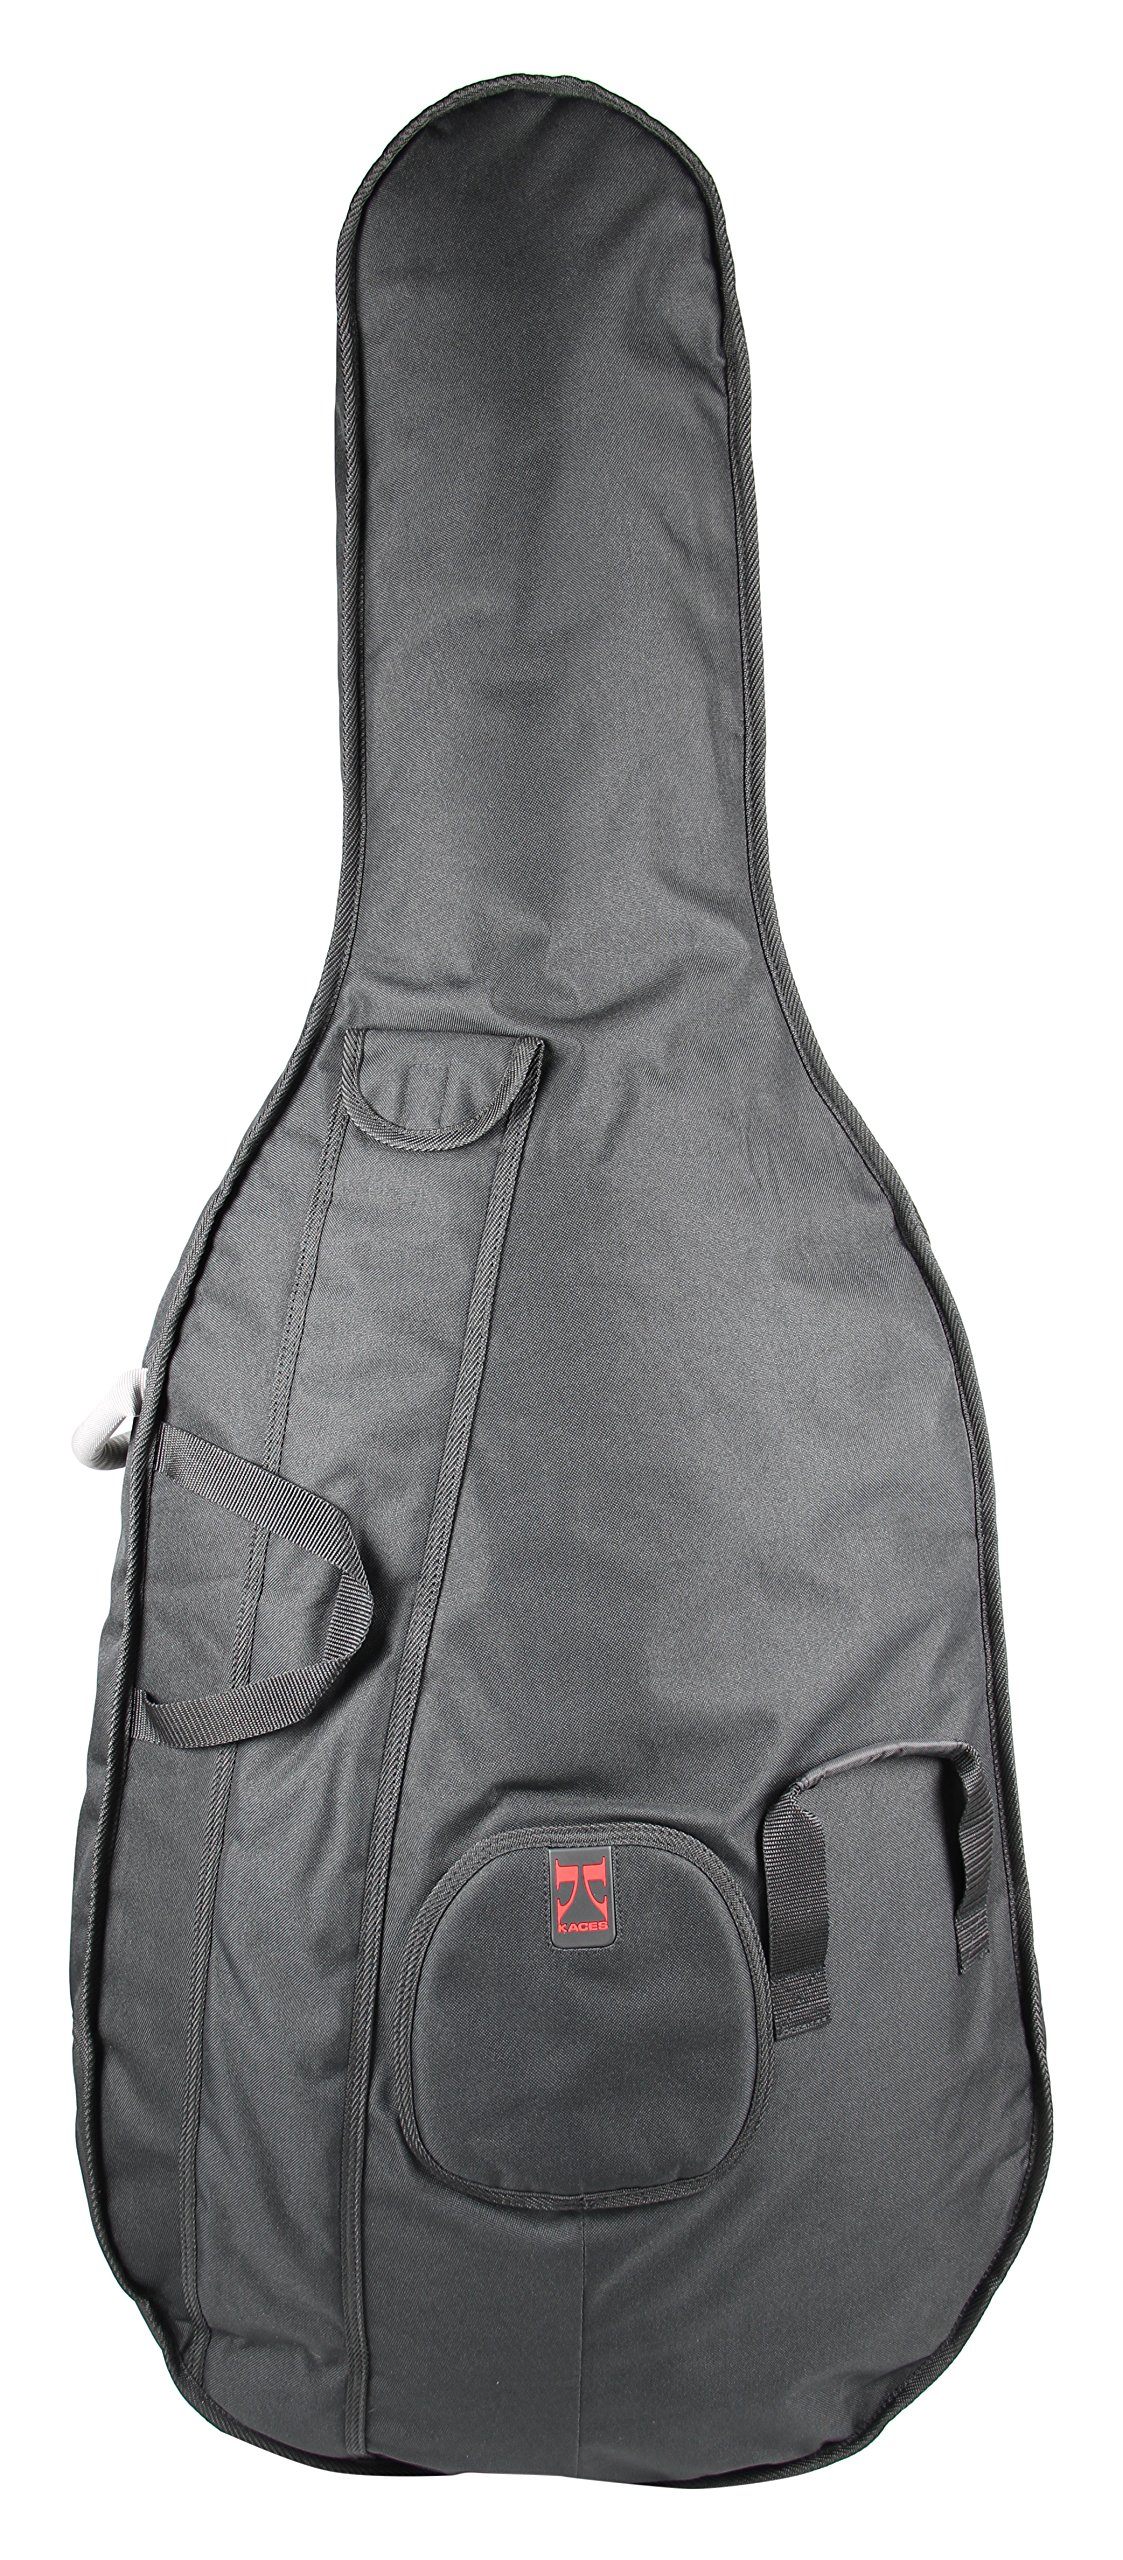 Kaces UKUB-3/4 University Series 3/4 Size Bass Bag